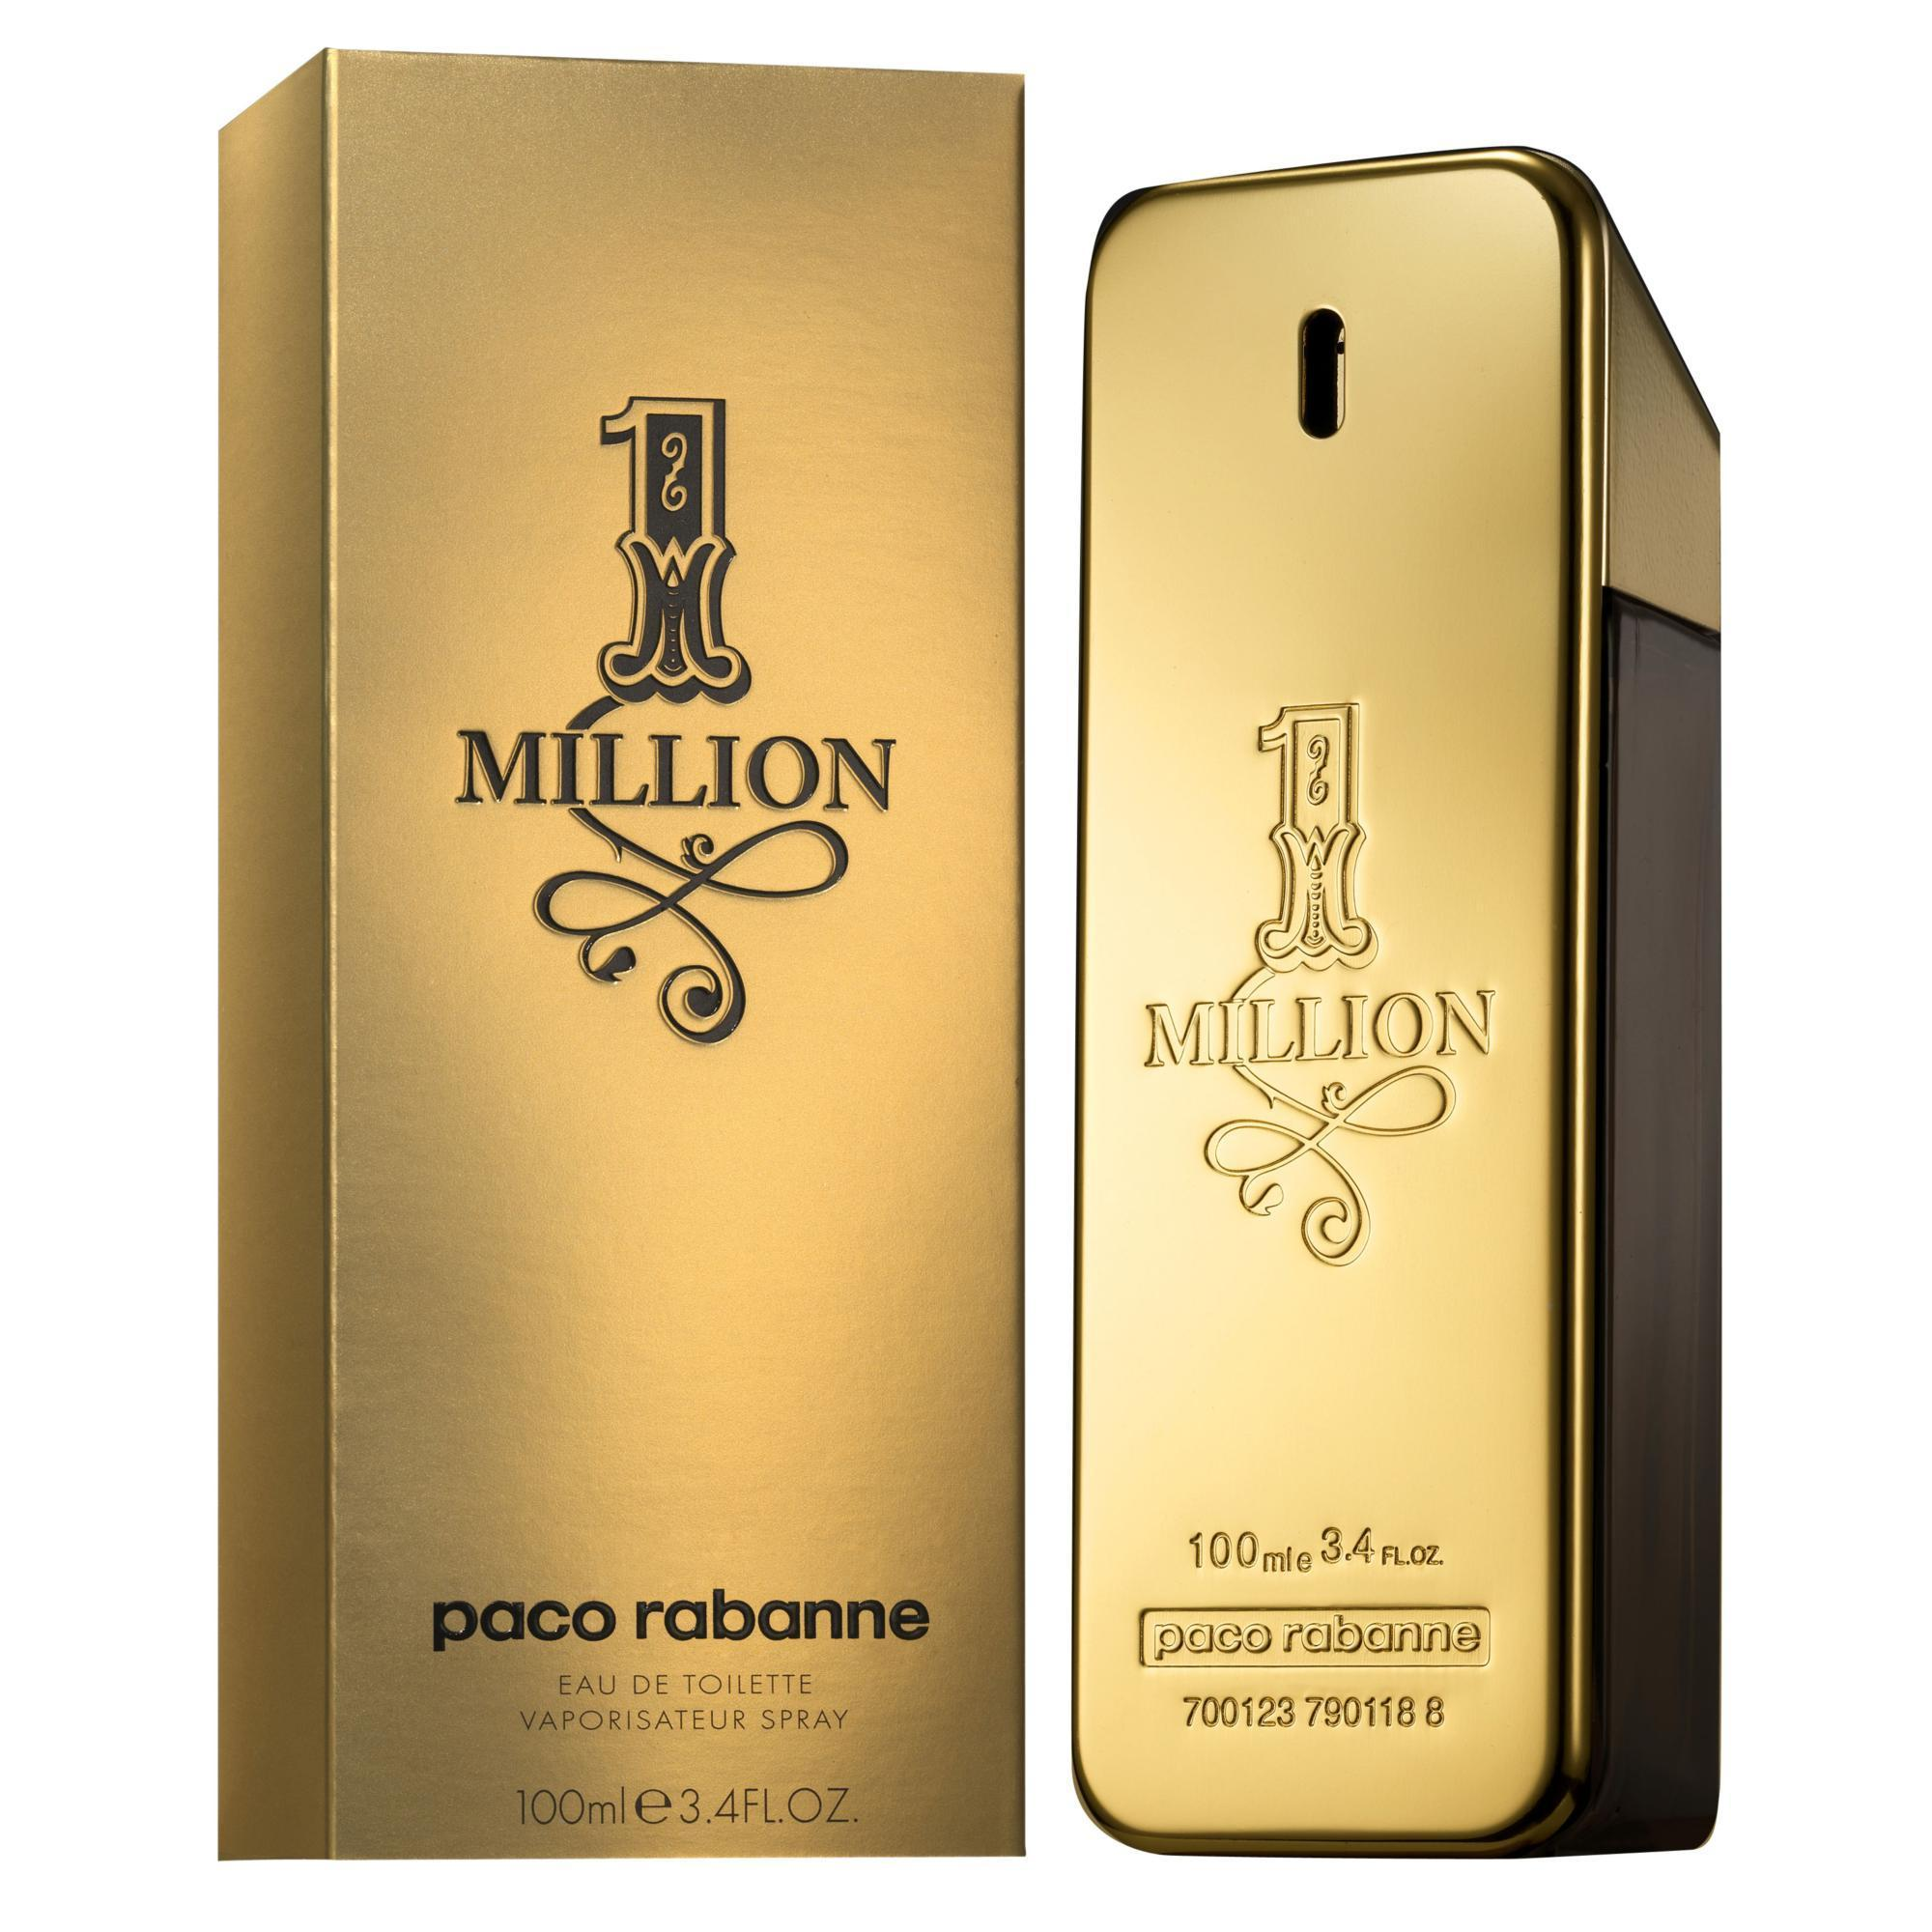 1-paris-gallery-paco-rabanne-68451301-65051844